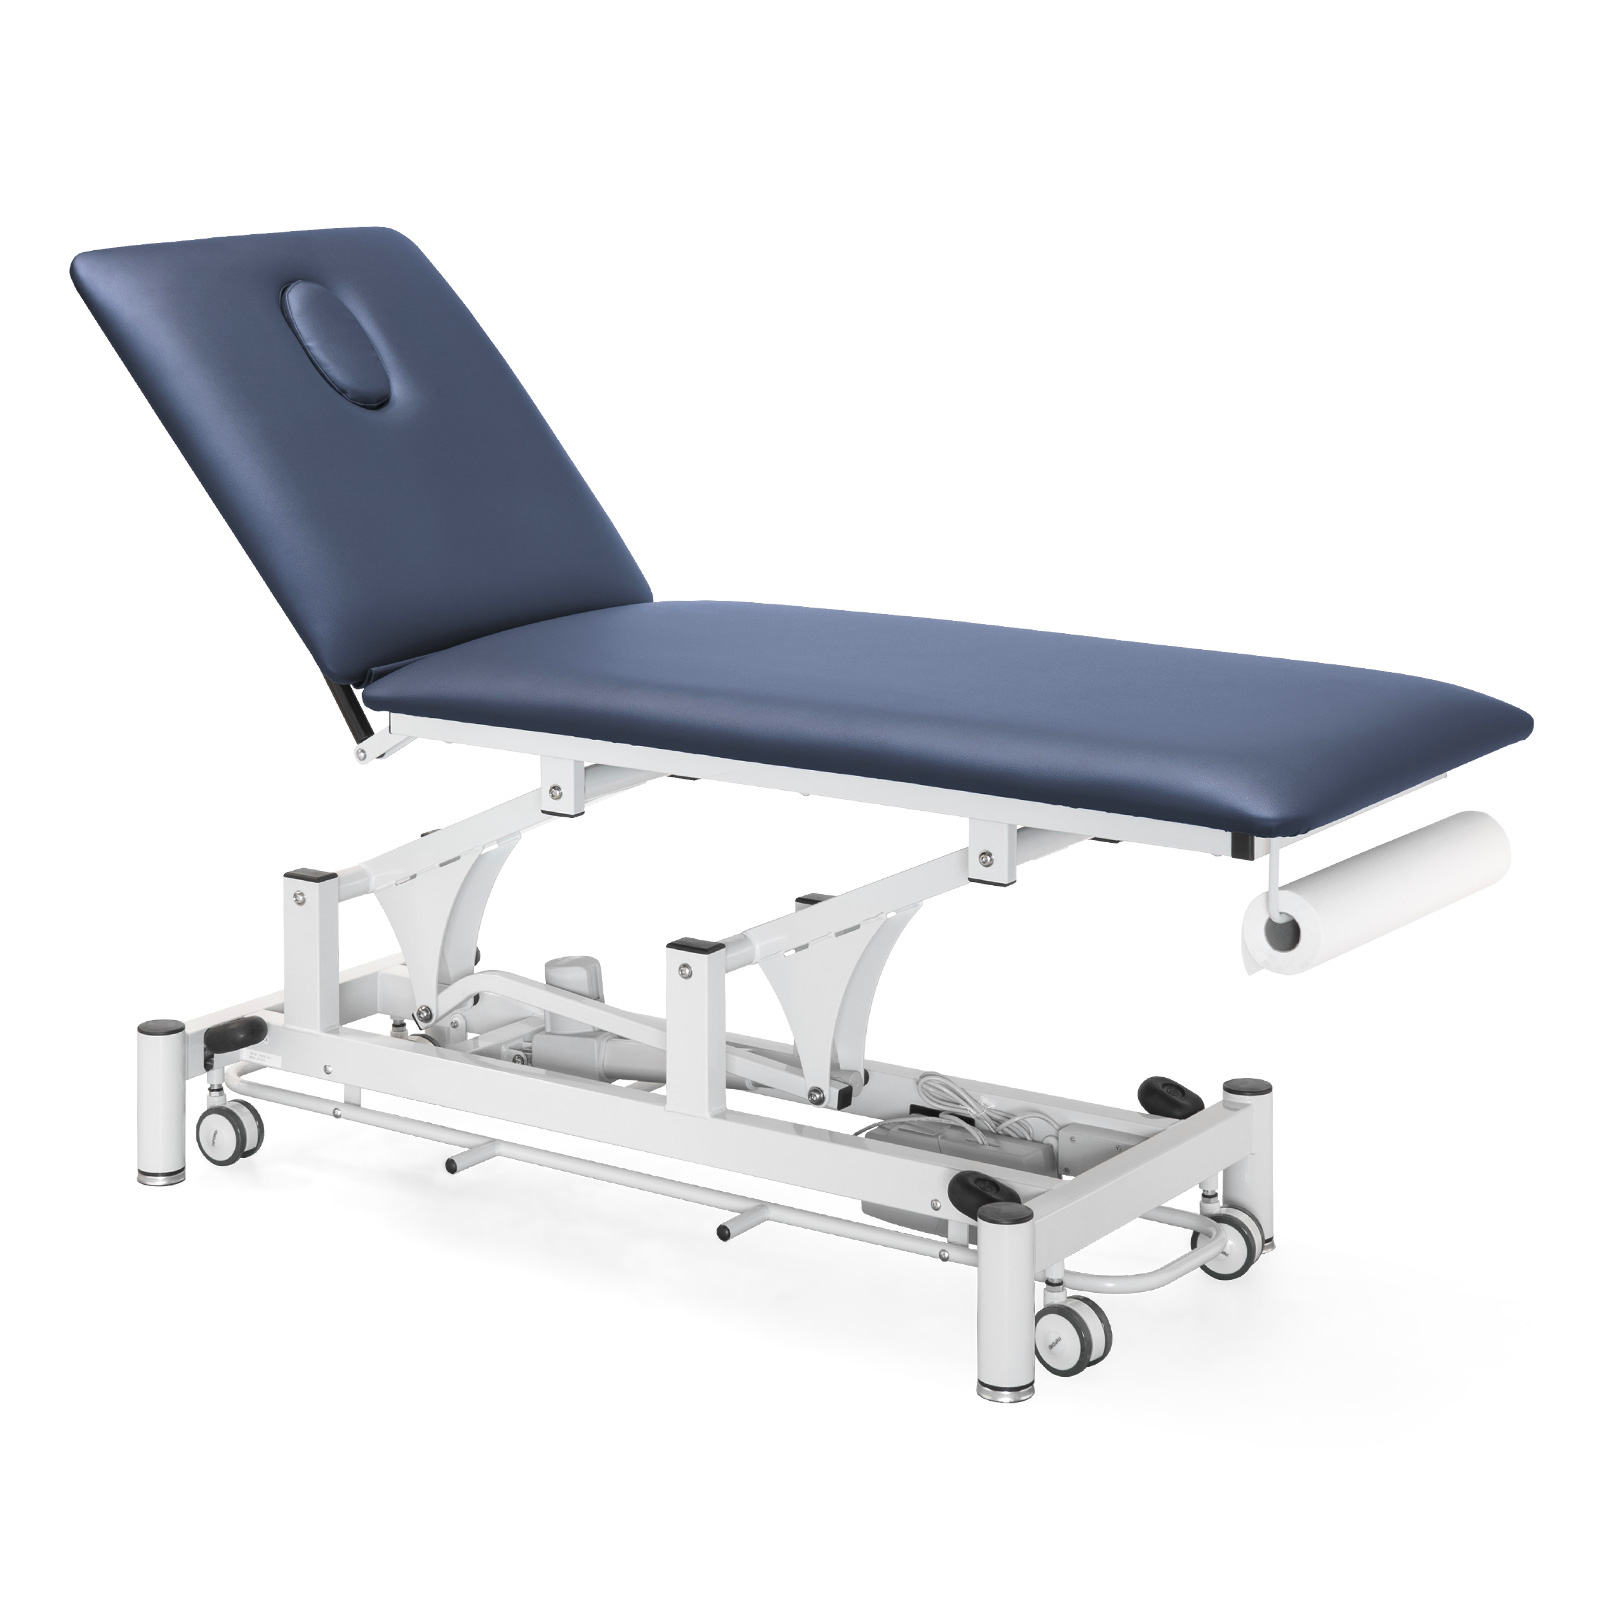 Table PhysioPRO®